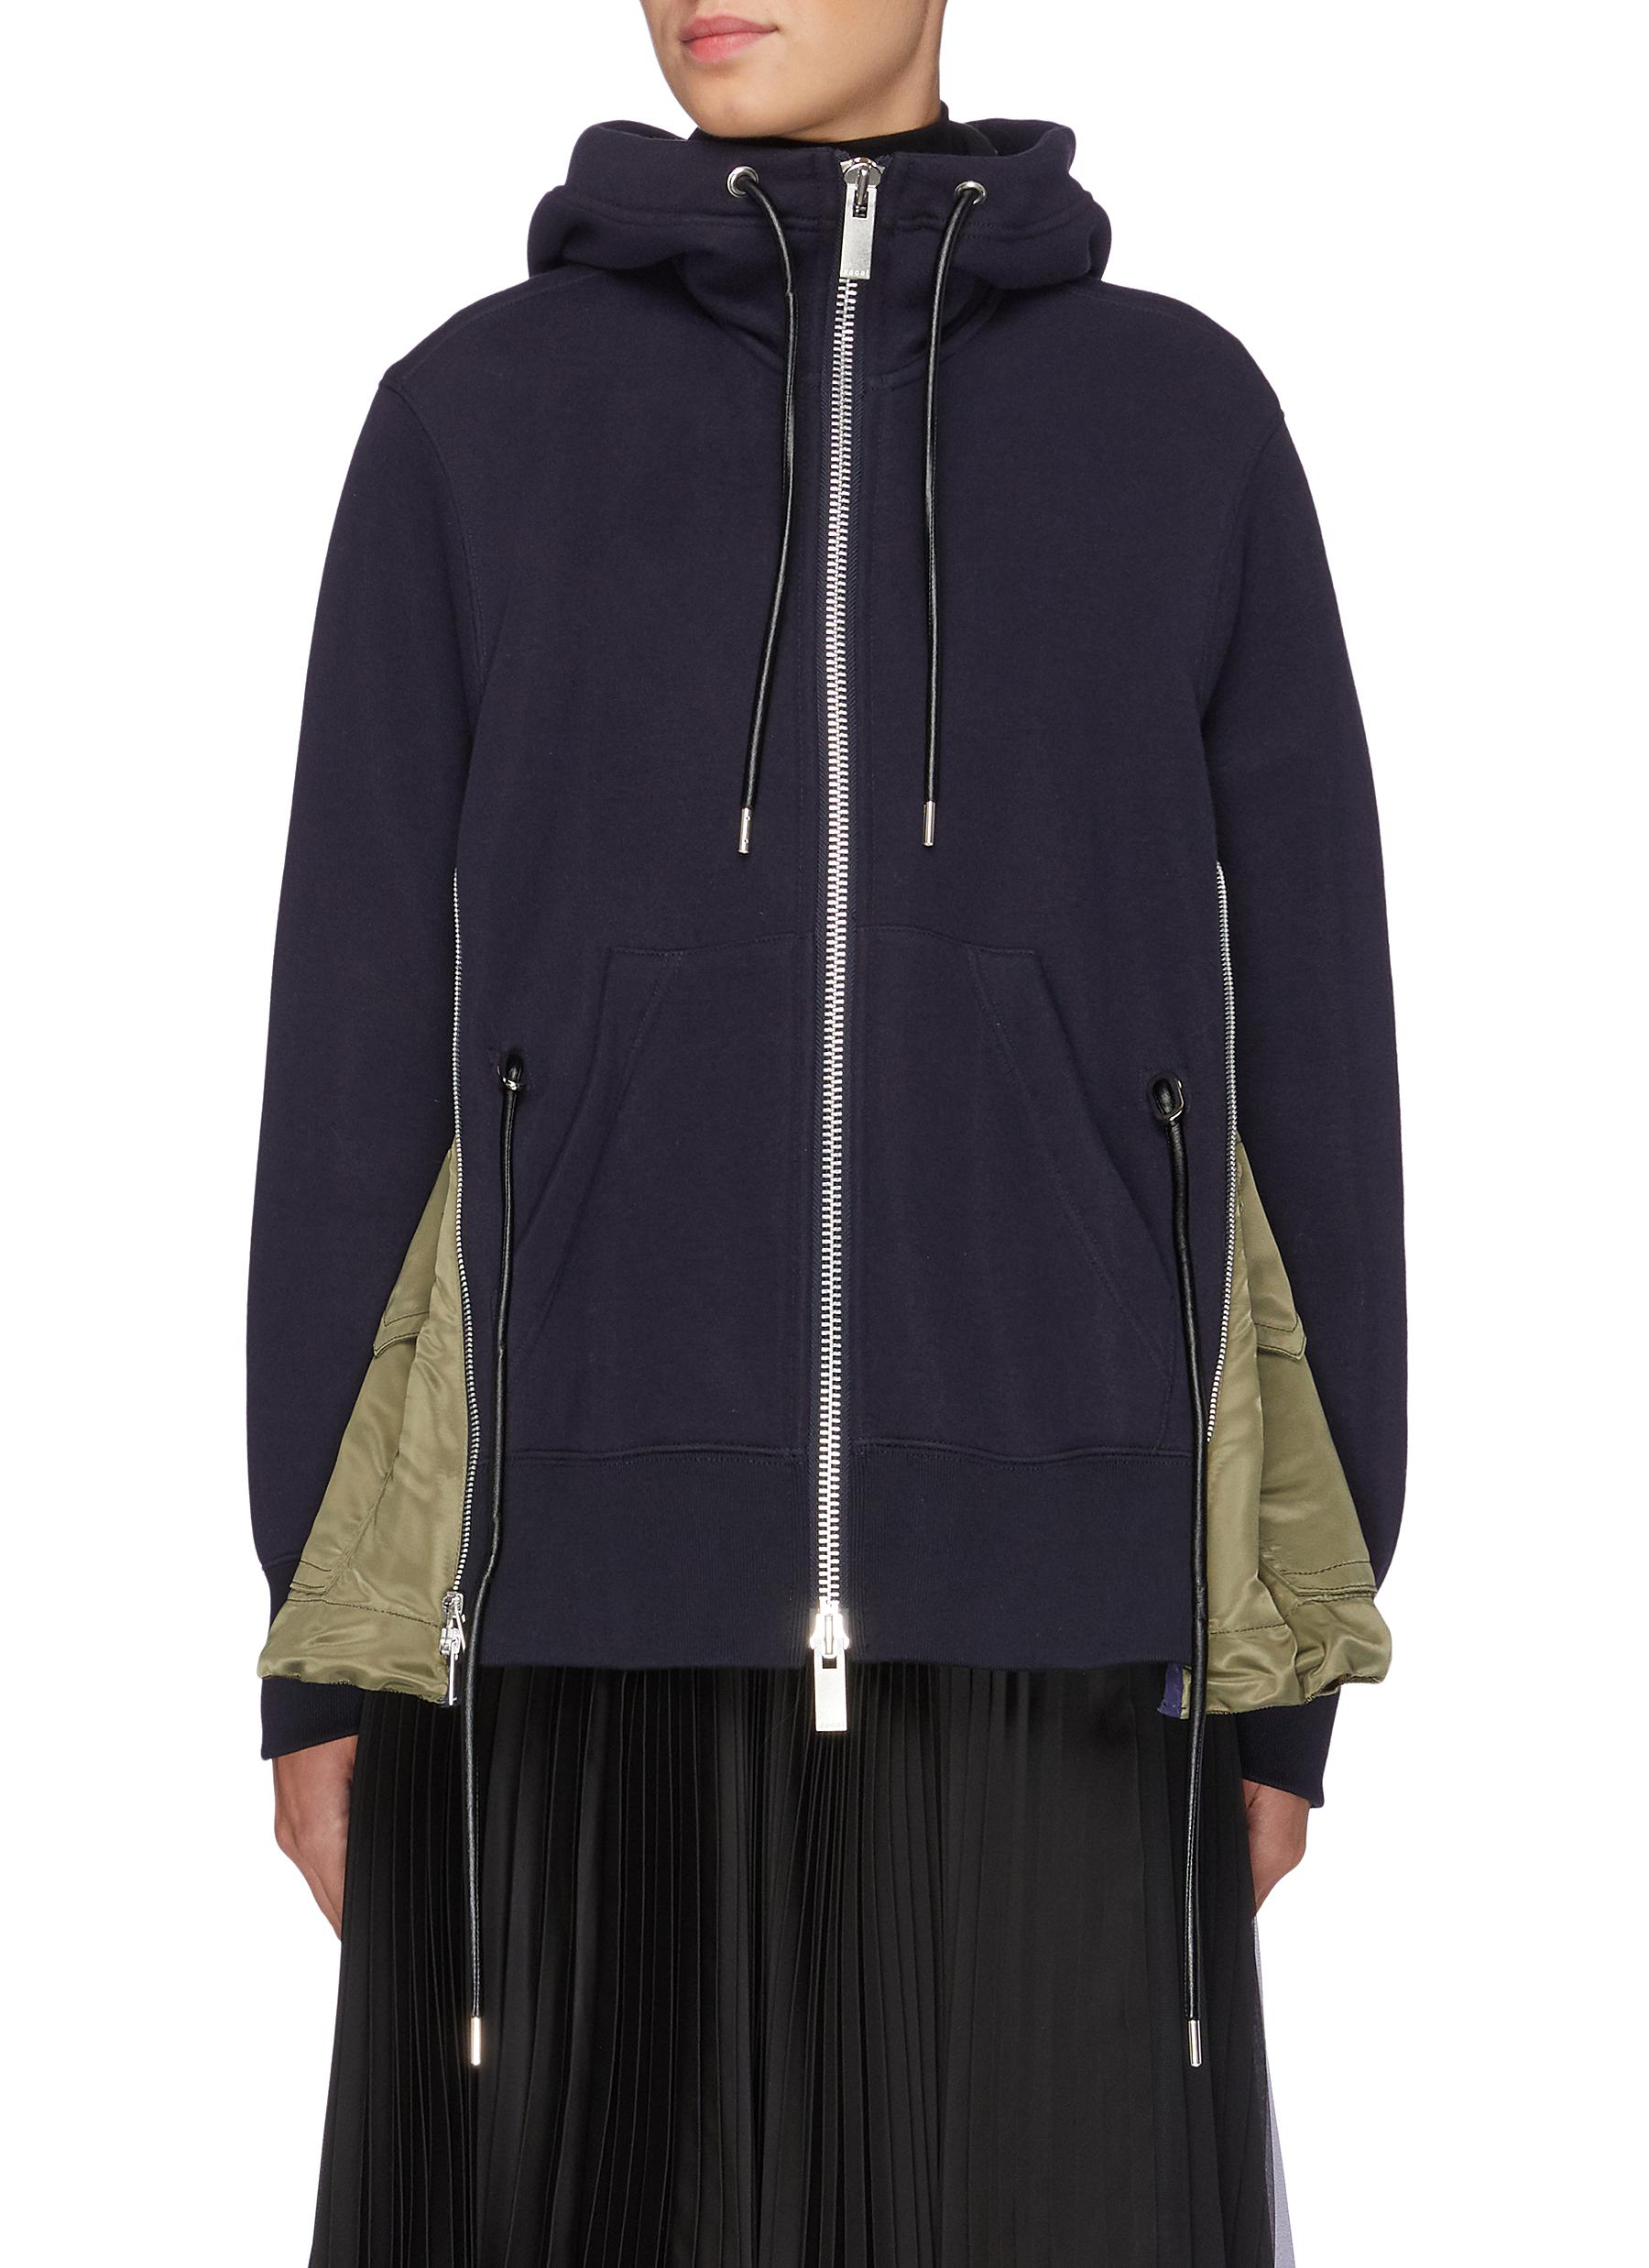 Contrast nylon zip side drawstring hoodie by Sacai